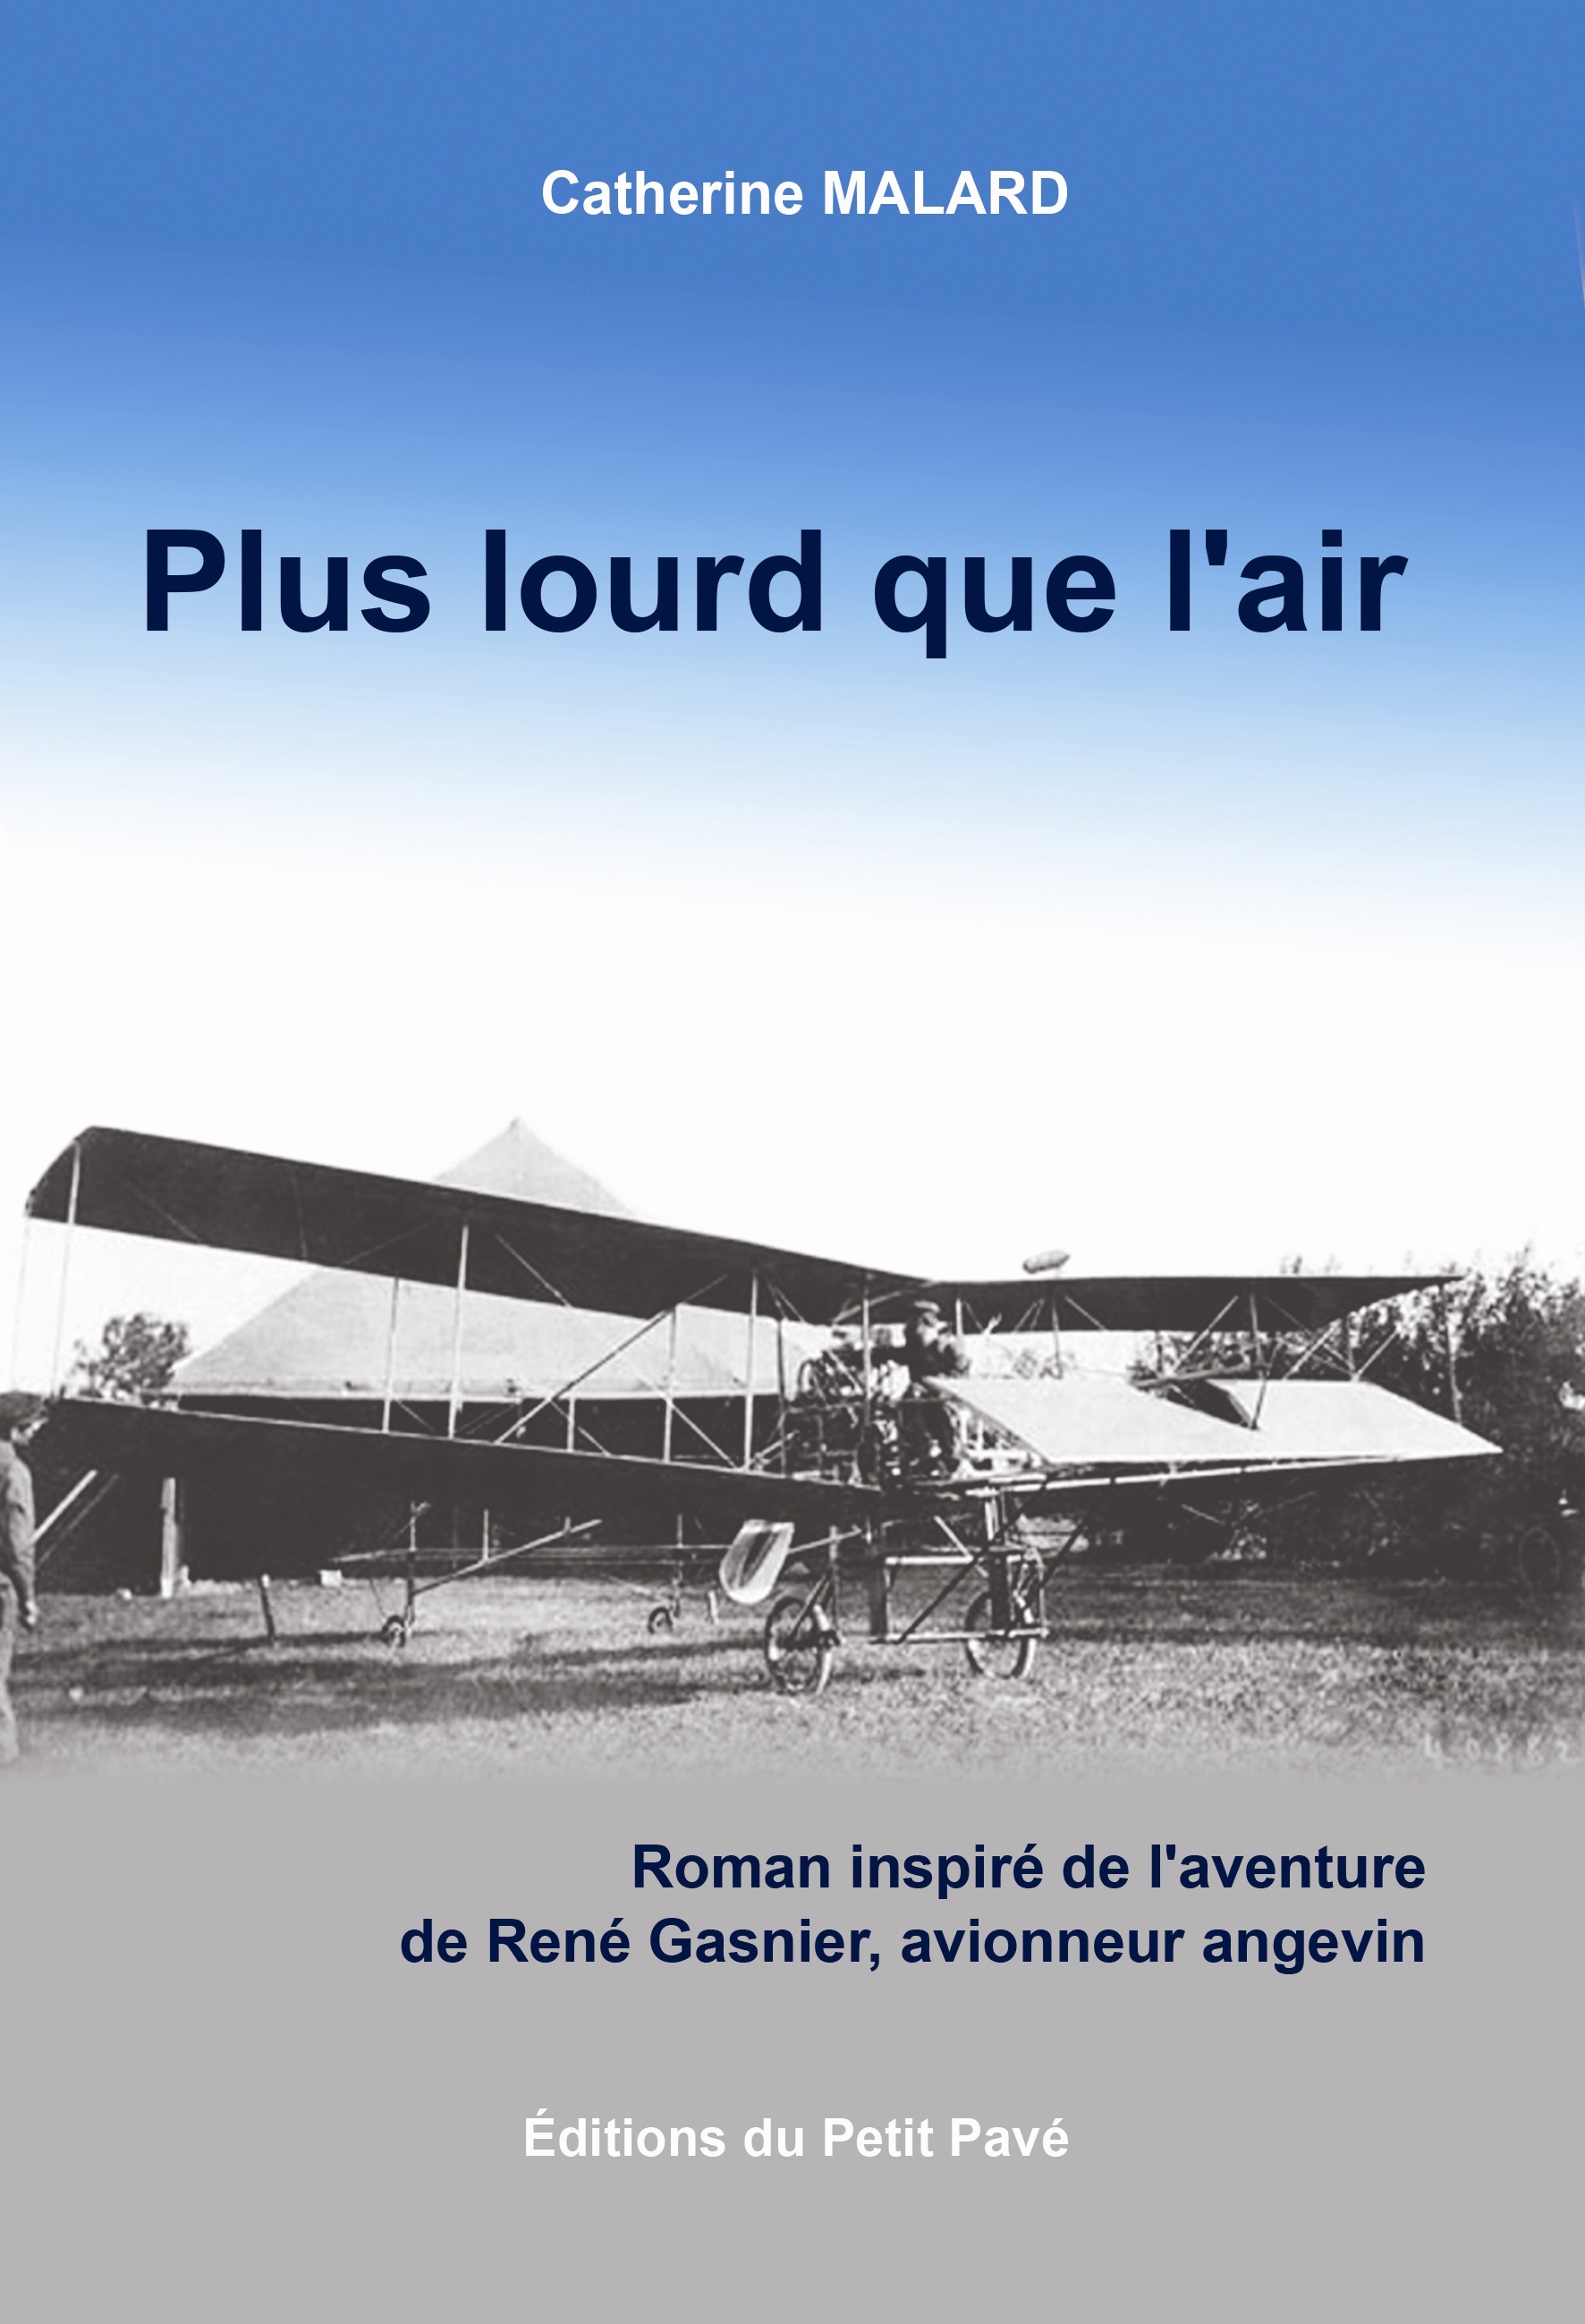 Plus lourd que l'air - Photo couv_plus_lourd-v2-3_0.jpg